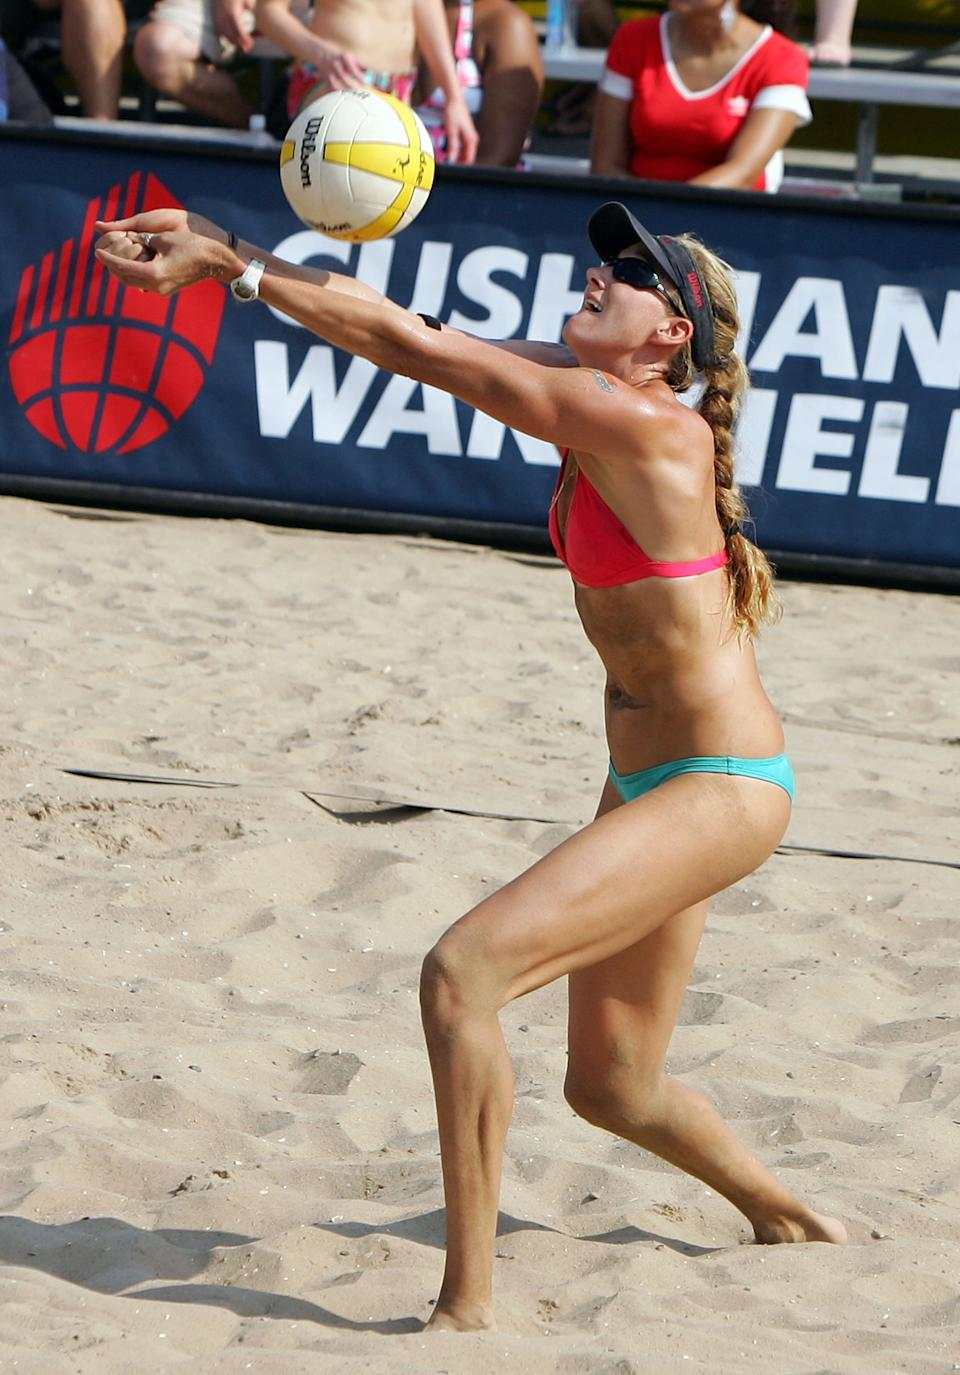 NEW YORK - JULY 19: Kerri Walsh plays the ball during the women's quarter-finals of the AVP Brooklyn Open against Jennifer Boss and April Ross on July 19, 2008 at Coney Island in the Brooklyn borough of New York City. (Photo by Jim McIsaac/Getty Images)